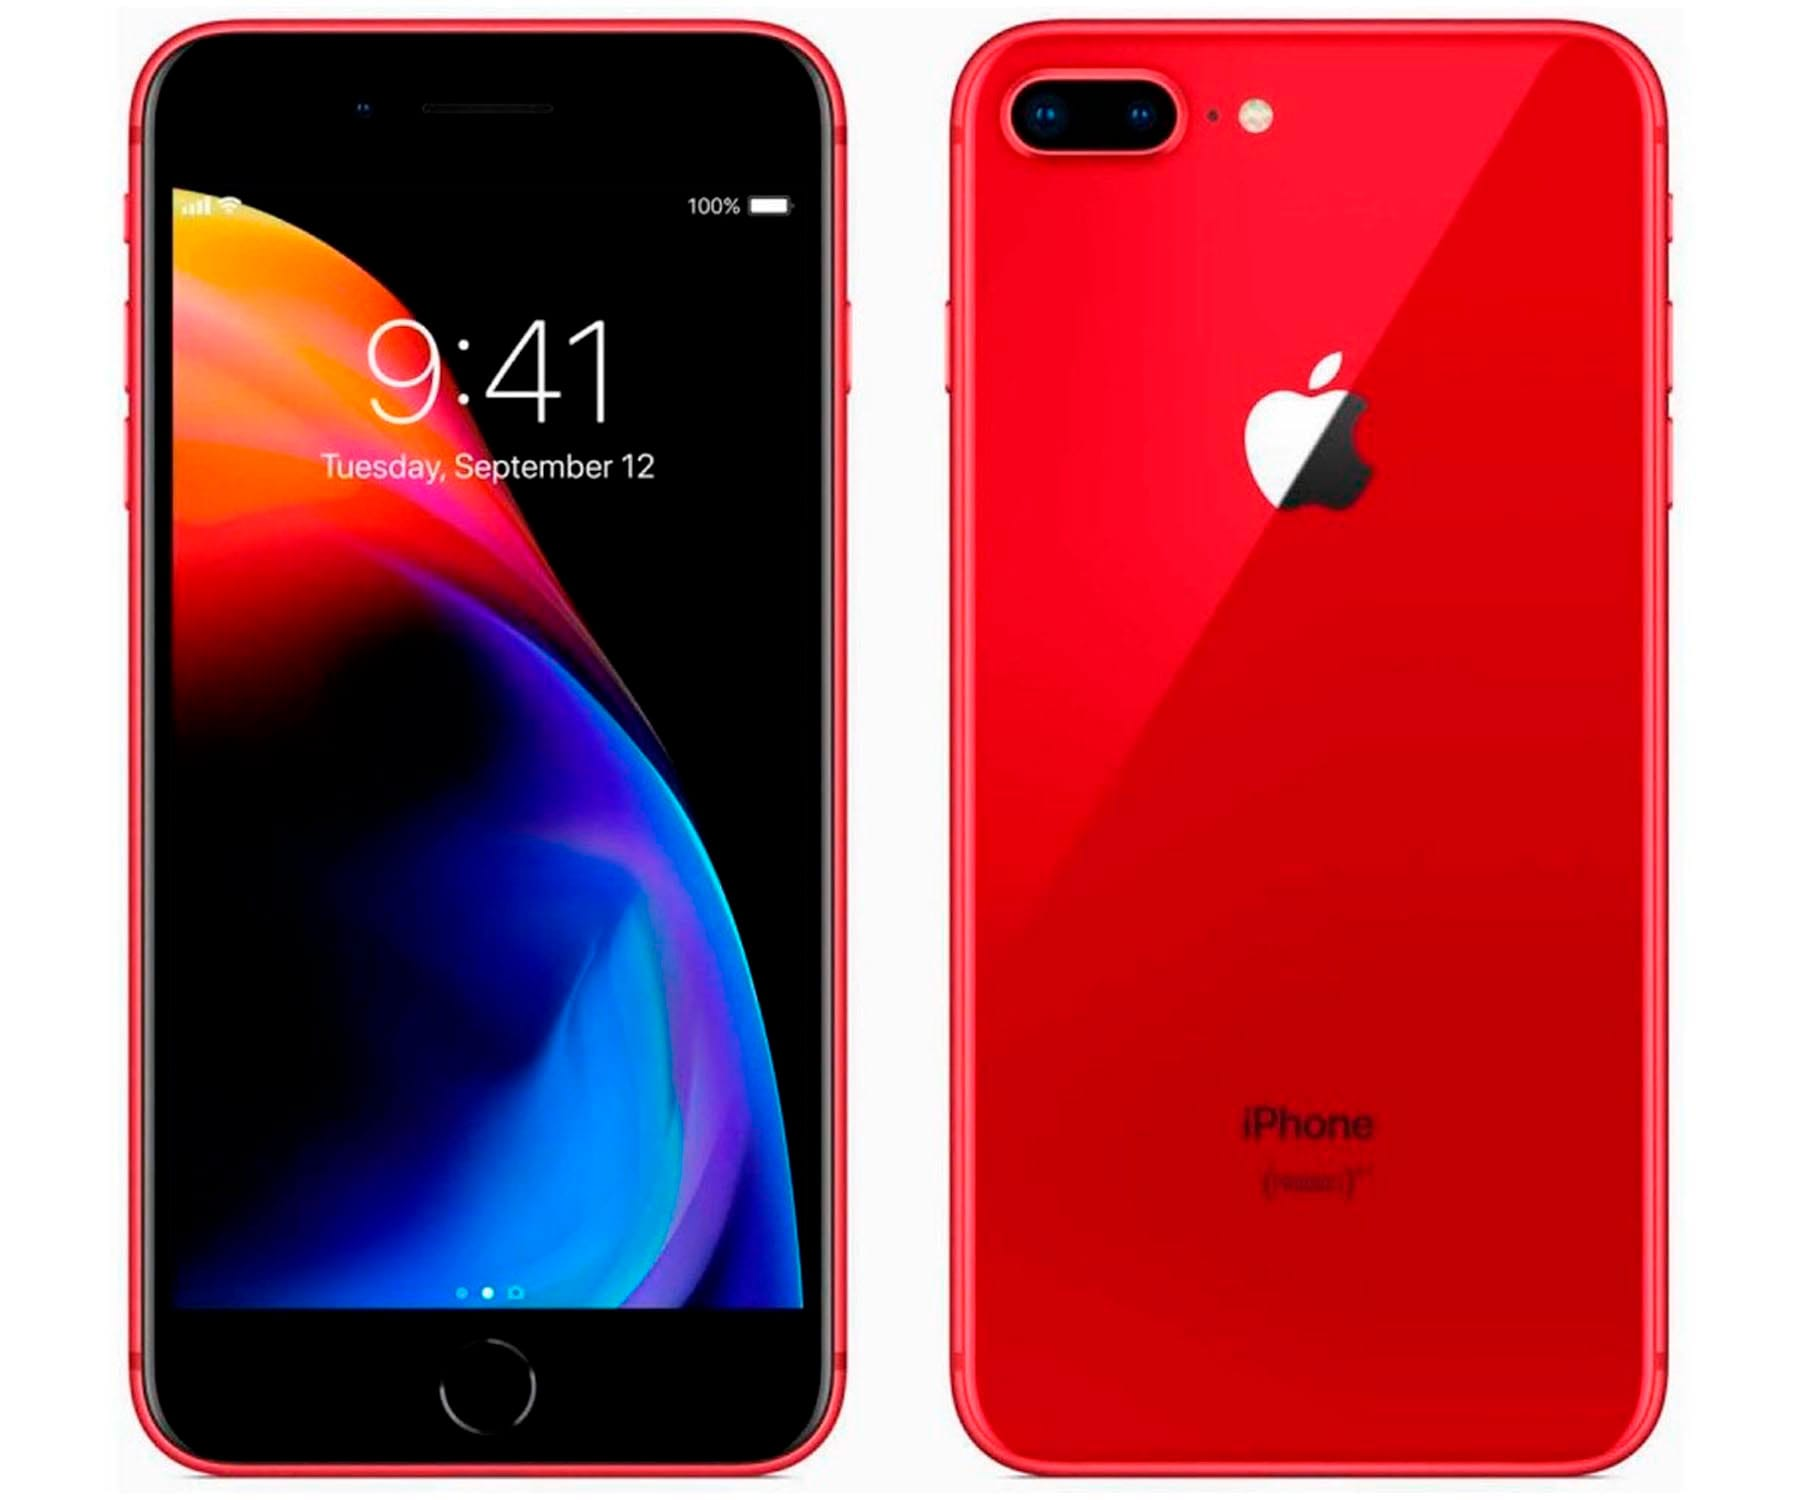 APPLE IPHONE 8 64GB ROJO REACONDICIONADO CPO MÓVIL 4G 4.7'' RETINA HD/6CORE/64GB/2GB RAM/12MP/7MP